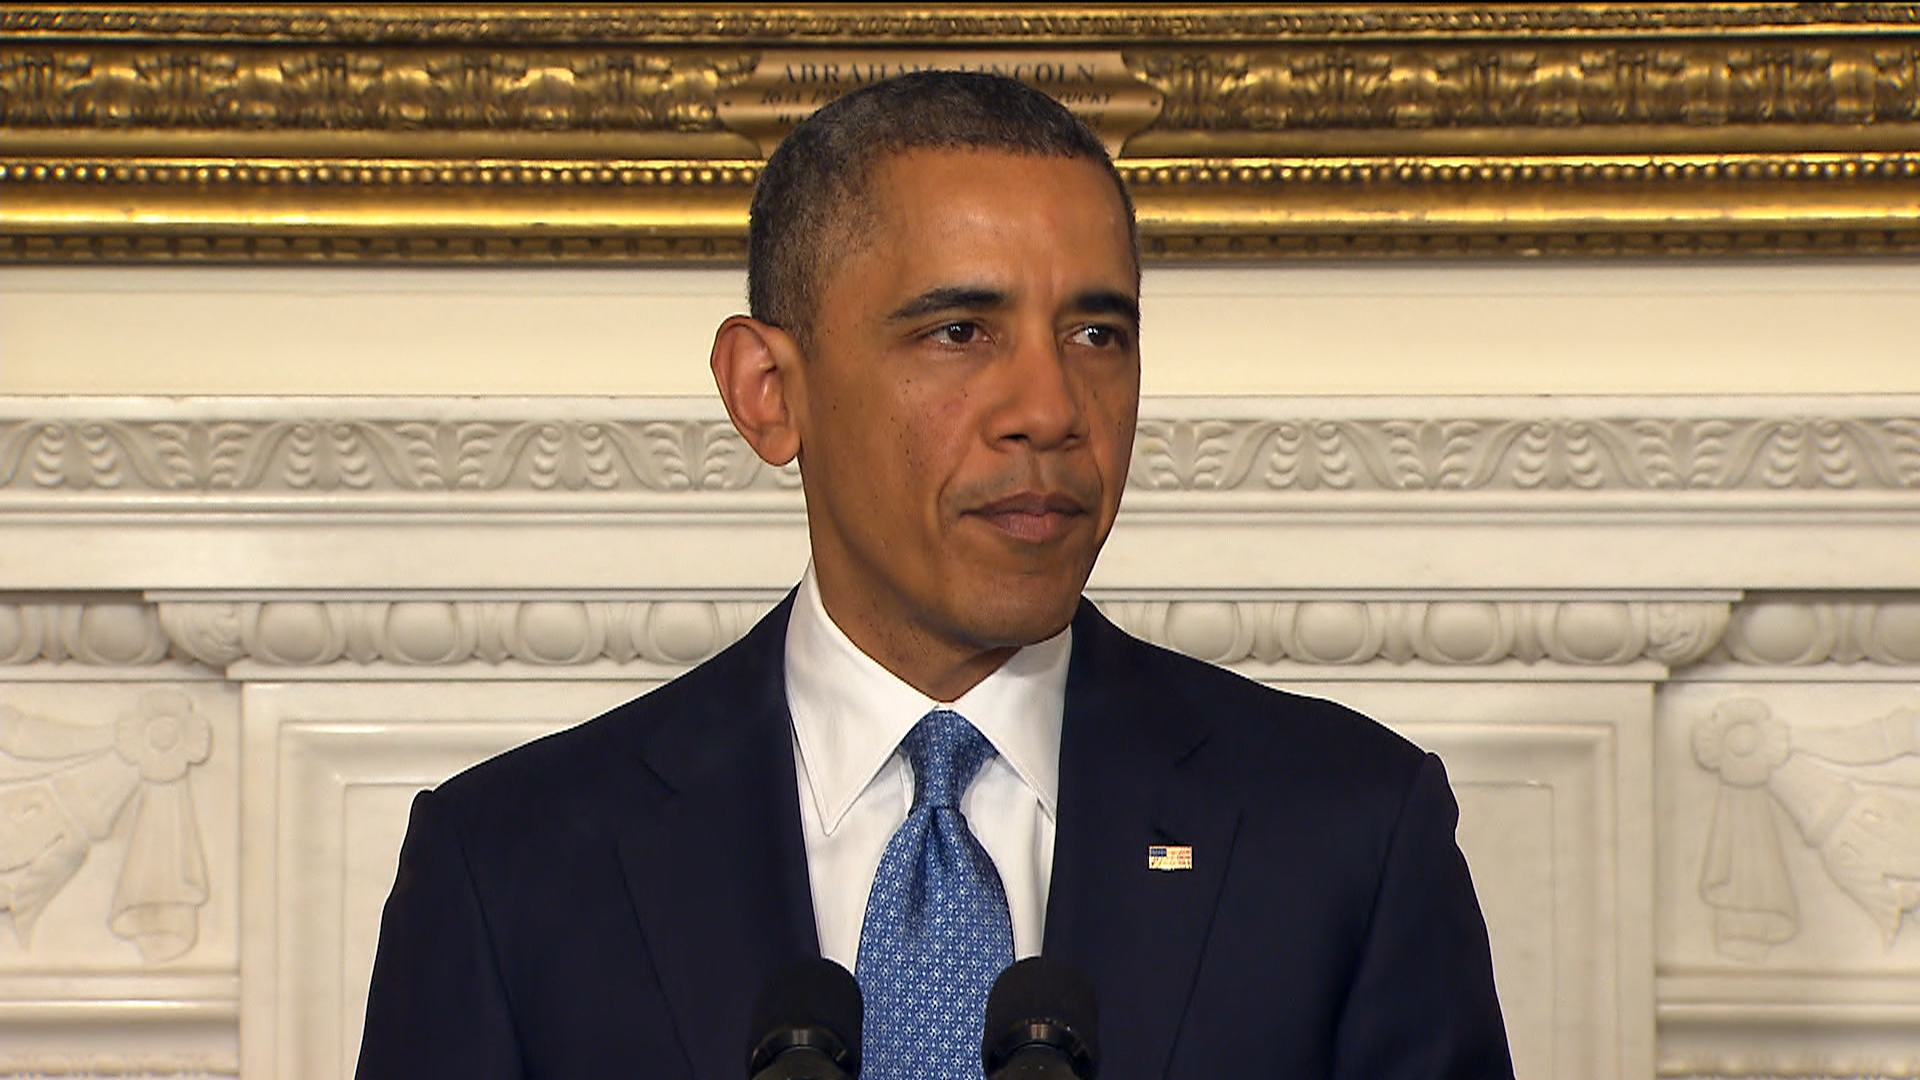 Skepticism over Iran deal increases